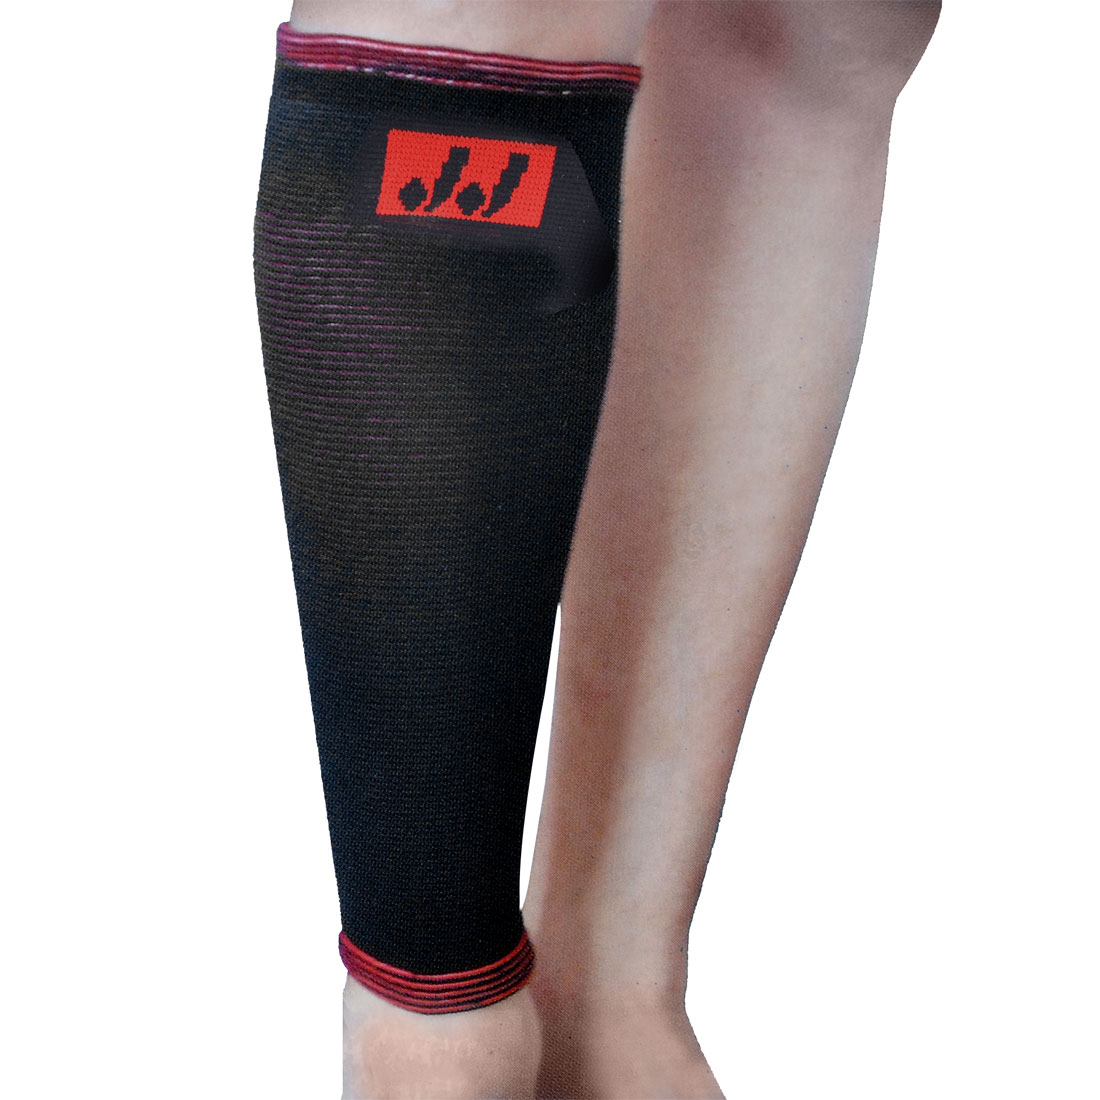 Sports Protecting Elastic Shin Calf Support Sleeve Black Red